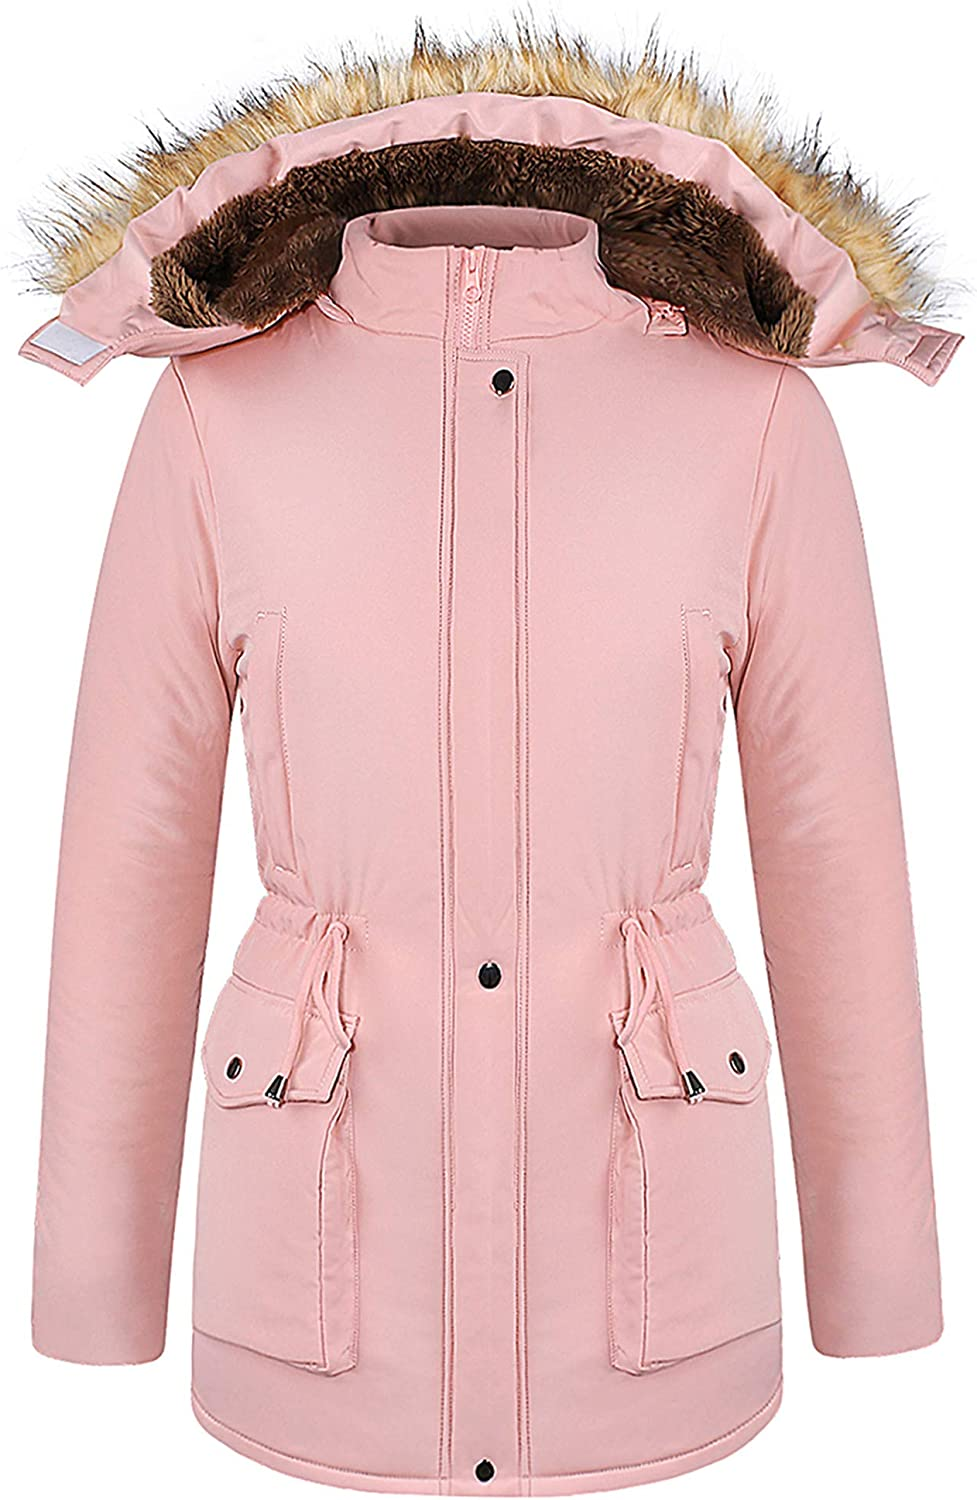 4THSEASON Womens Winter Warm Coat Thickening Cotton-Padded Parkas with Hood